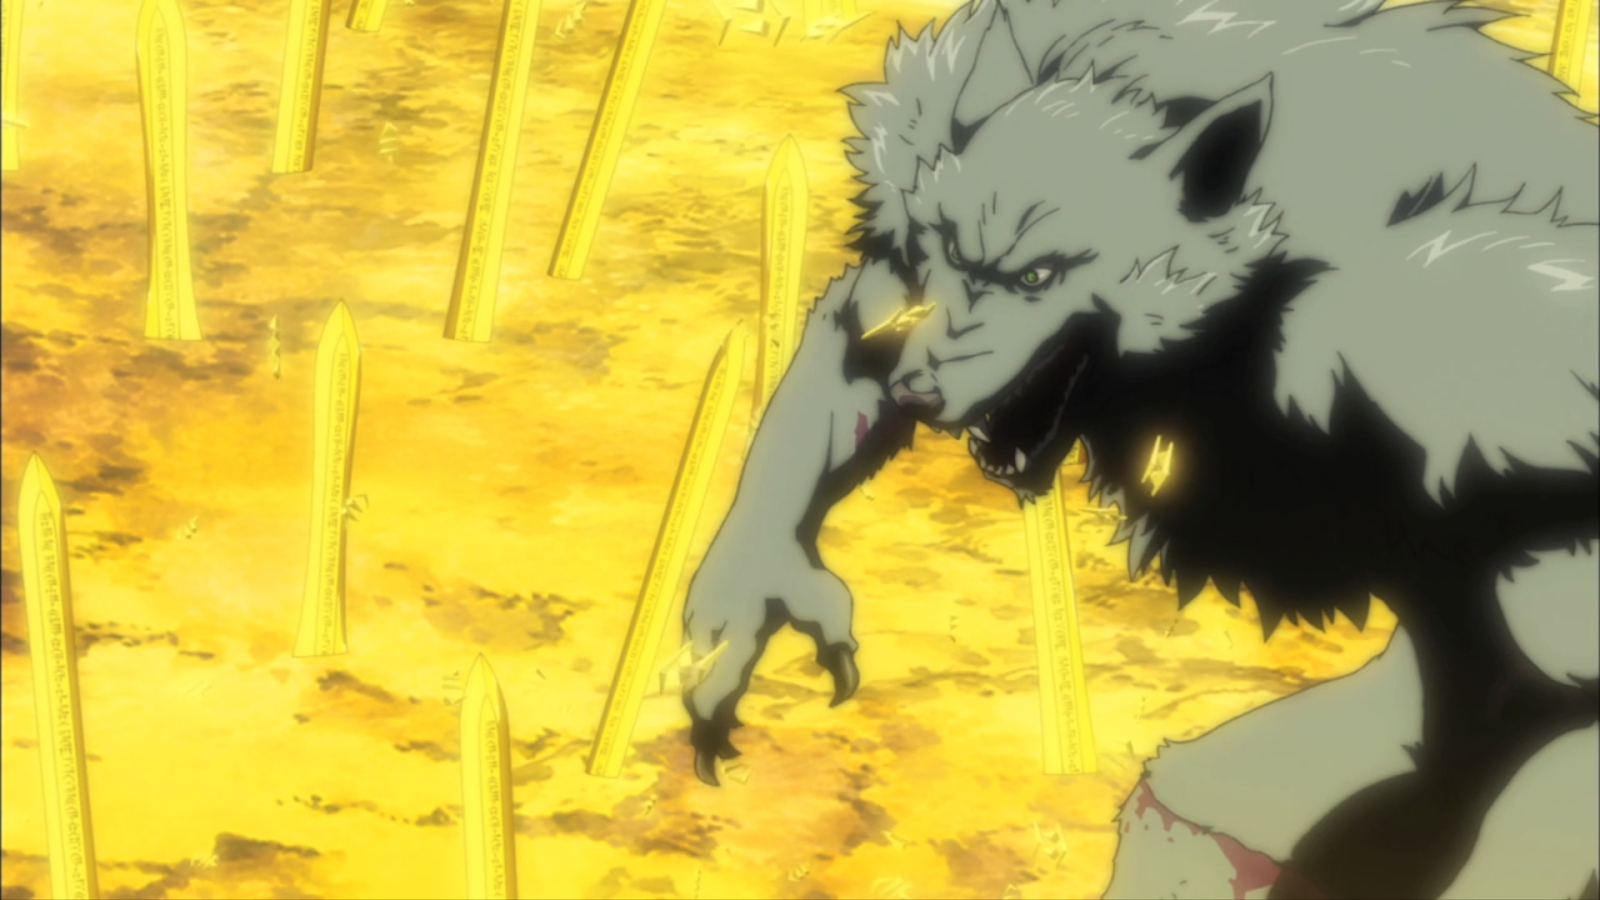 Crunchyroll - The 5 Most Loved and Hated Werewolves in Anime